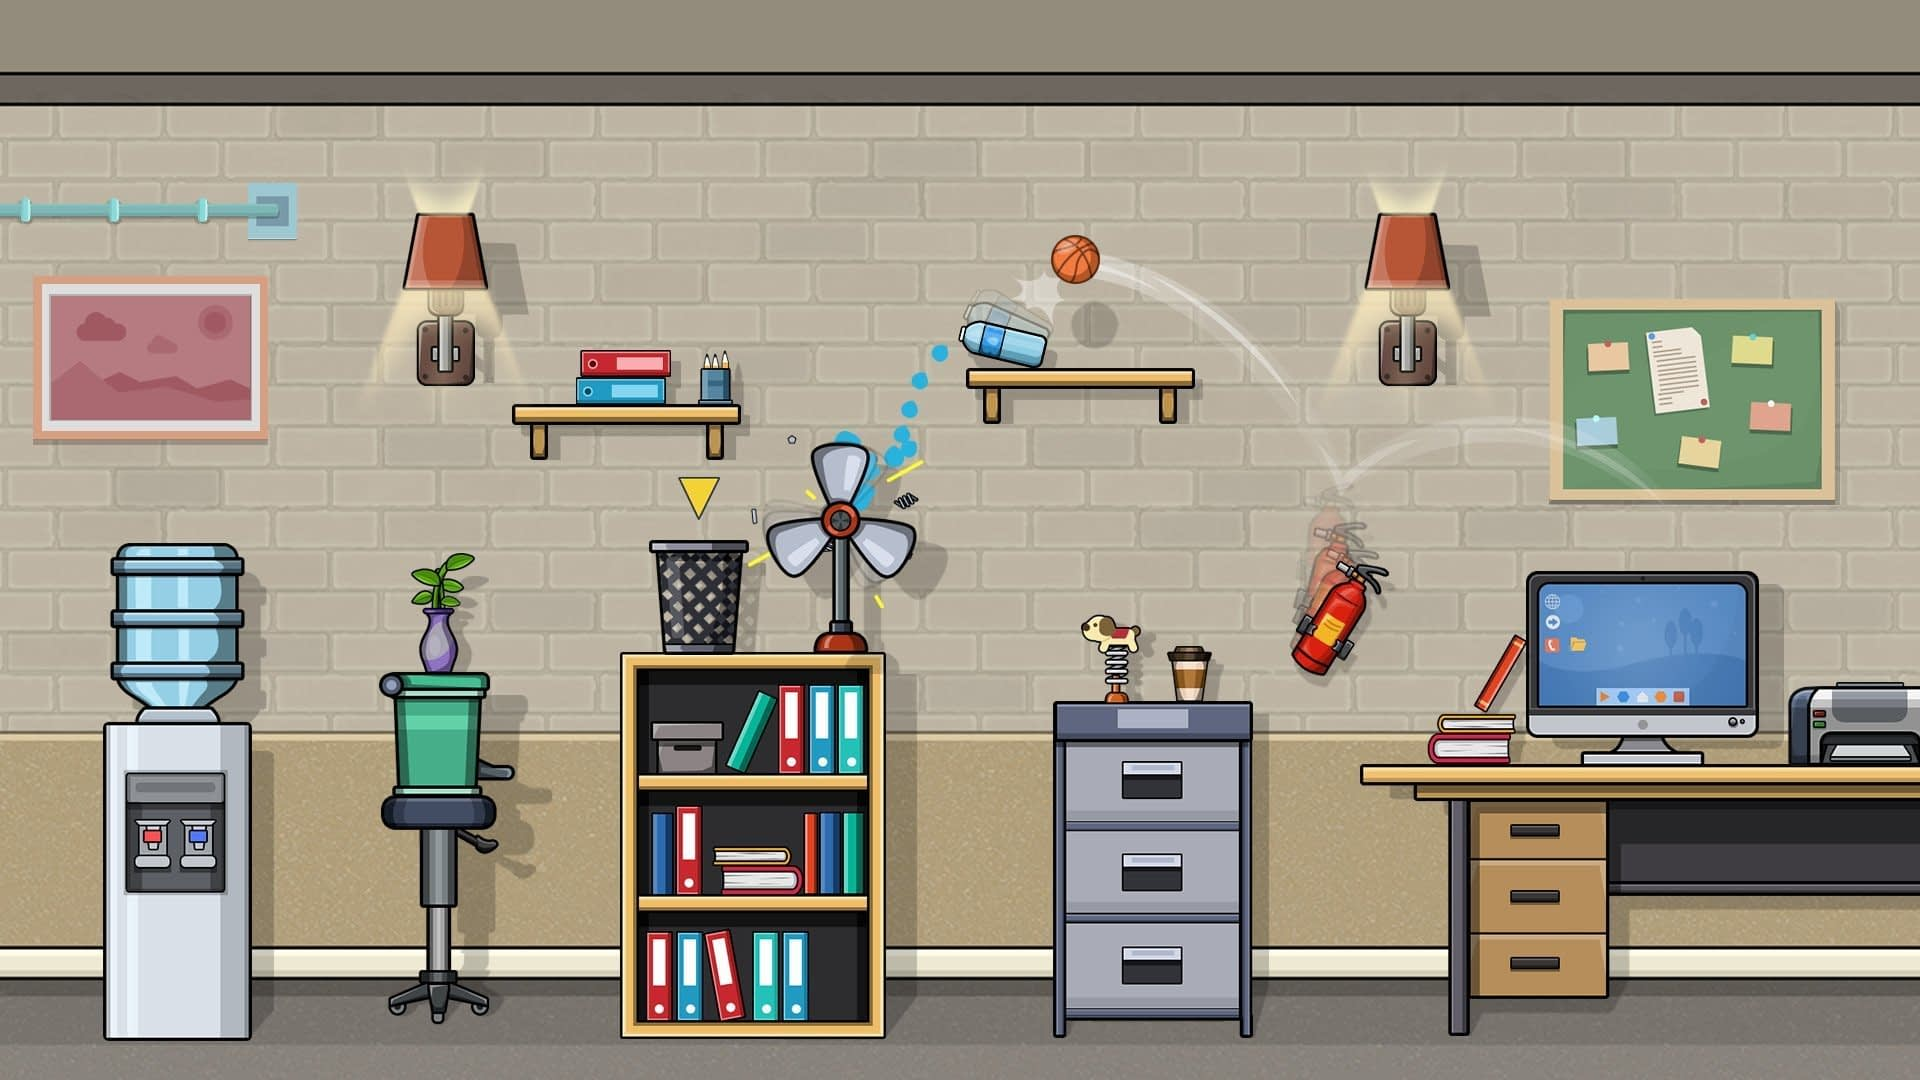 Games on Steam: Ball at work